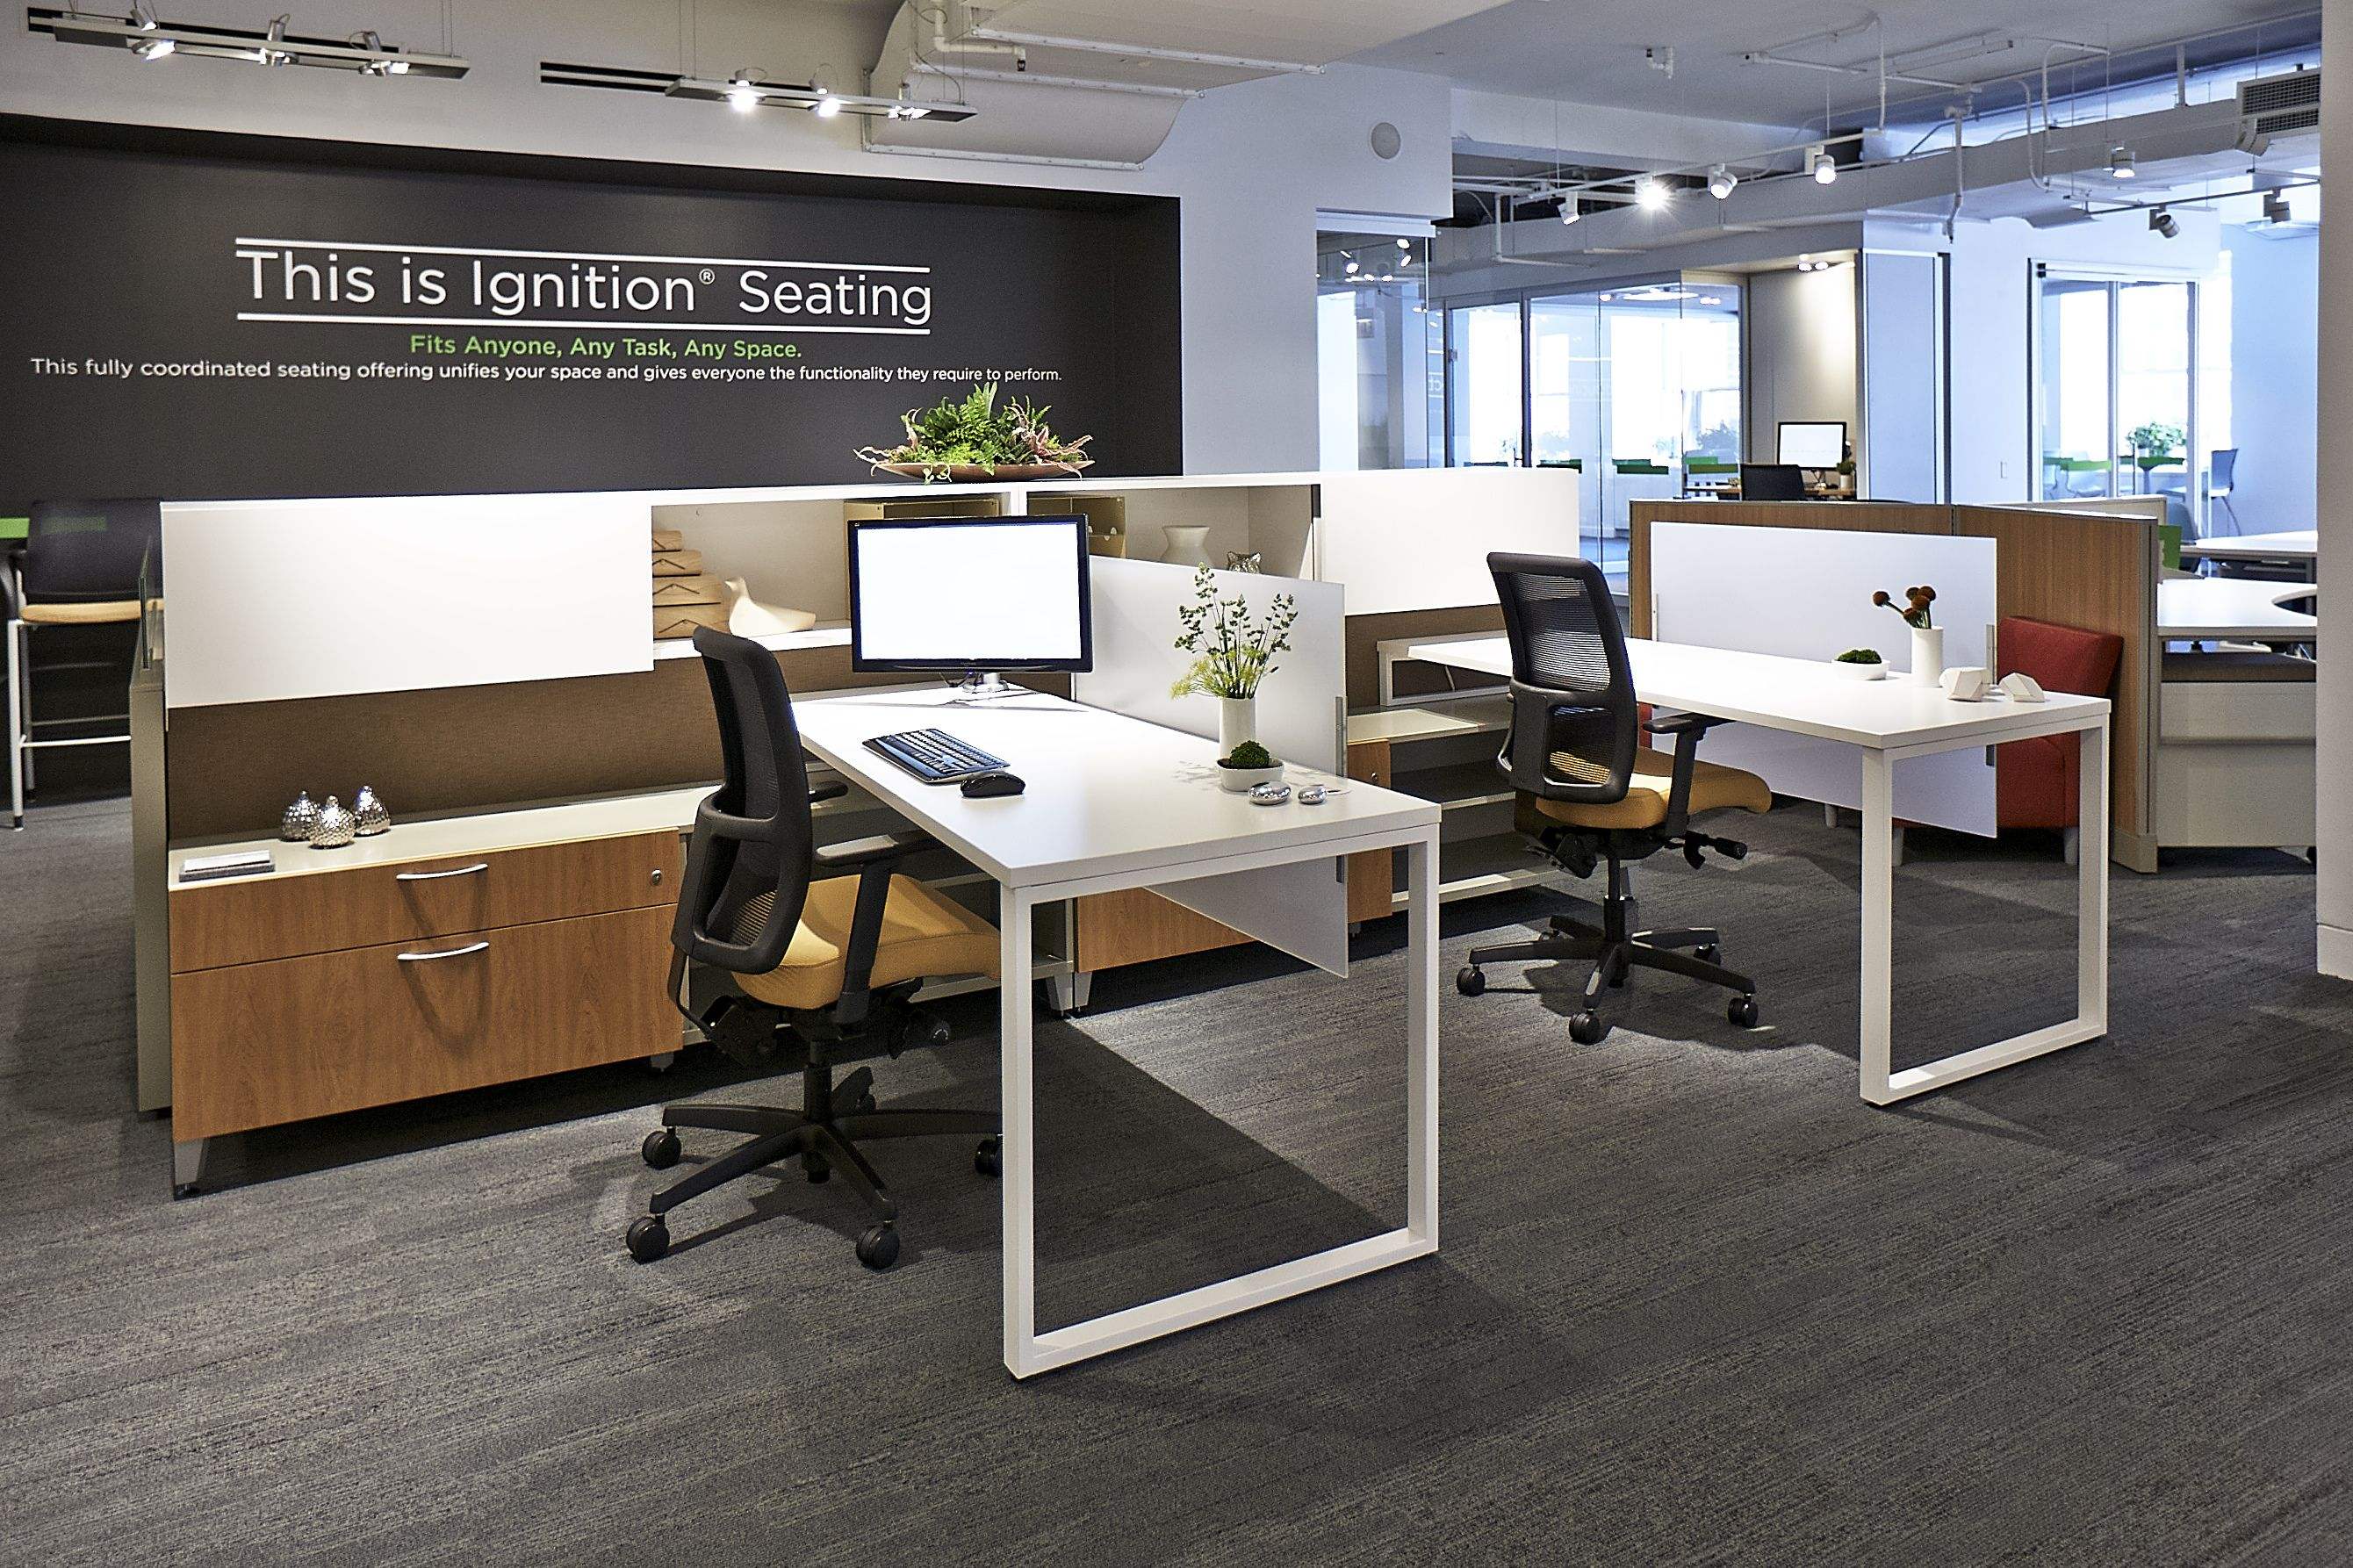 Hon neocon 2014 showroom suite 1130 merchandise mart for Office furniture design